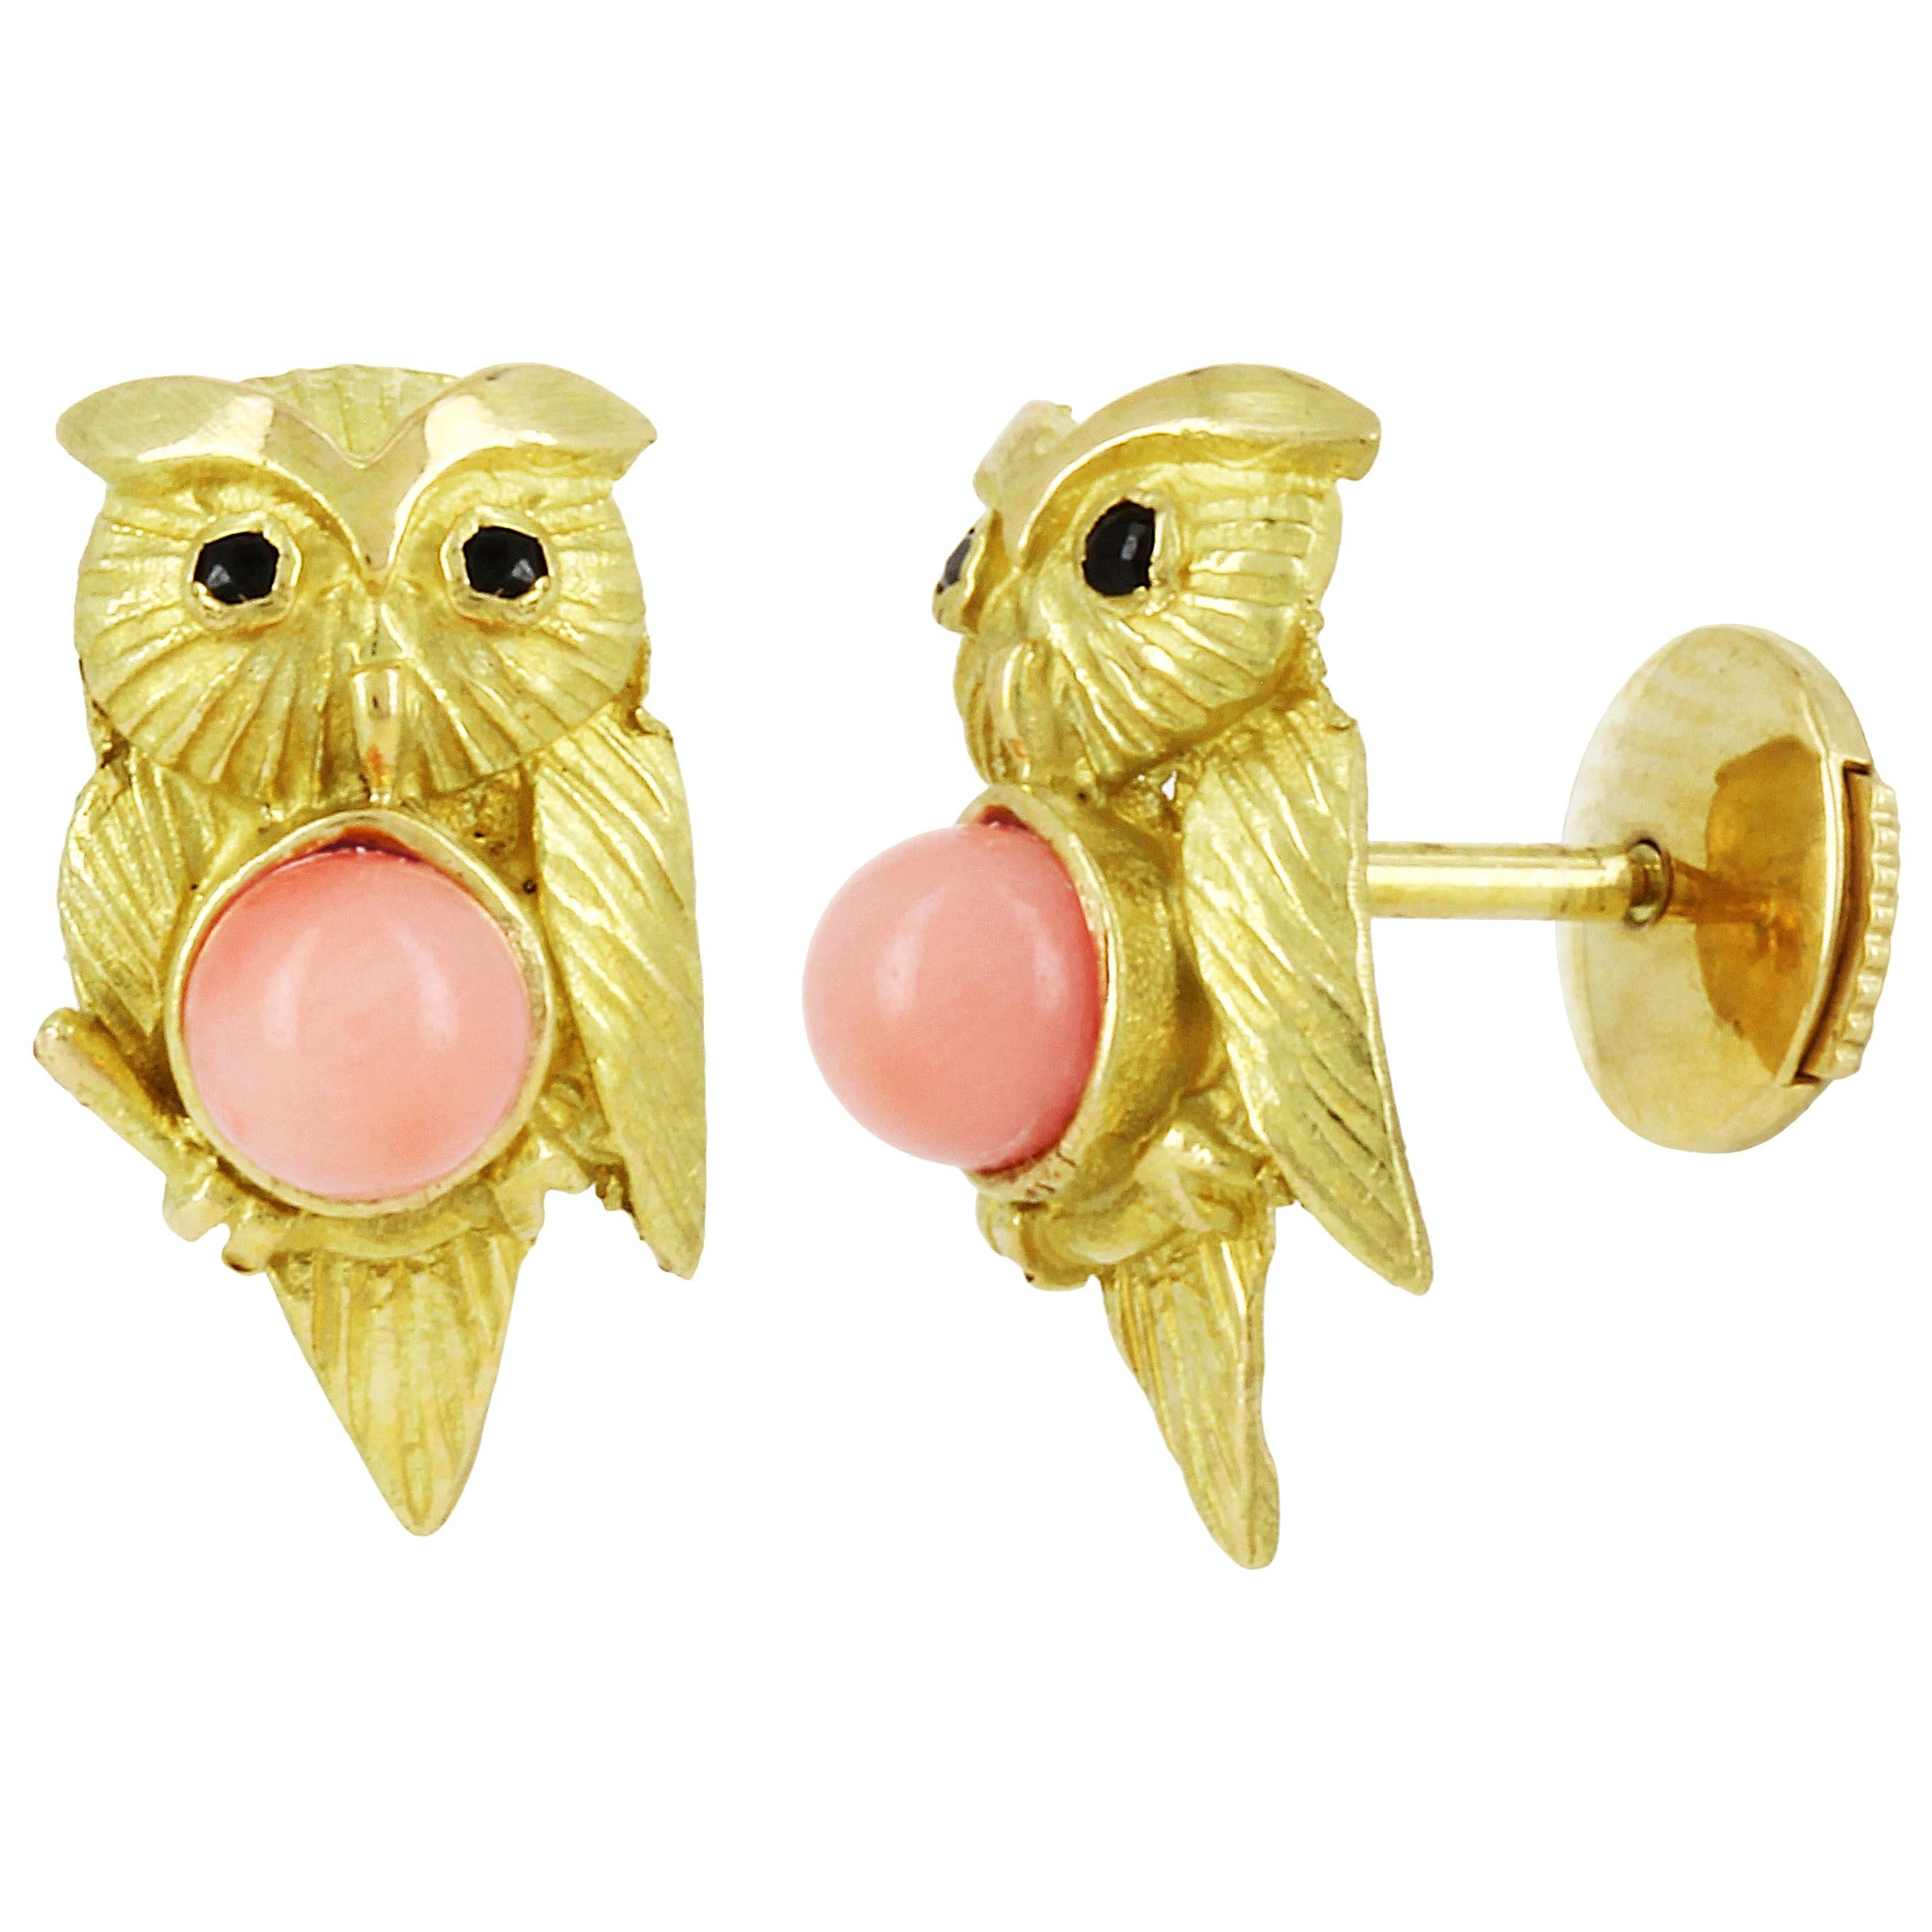 Yvonne Leon's Pari of Owl Earrings Studs in Yellow Gold 18 Carat and Corals